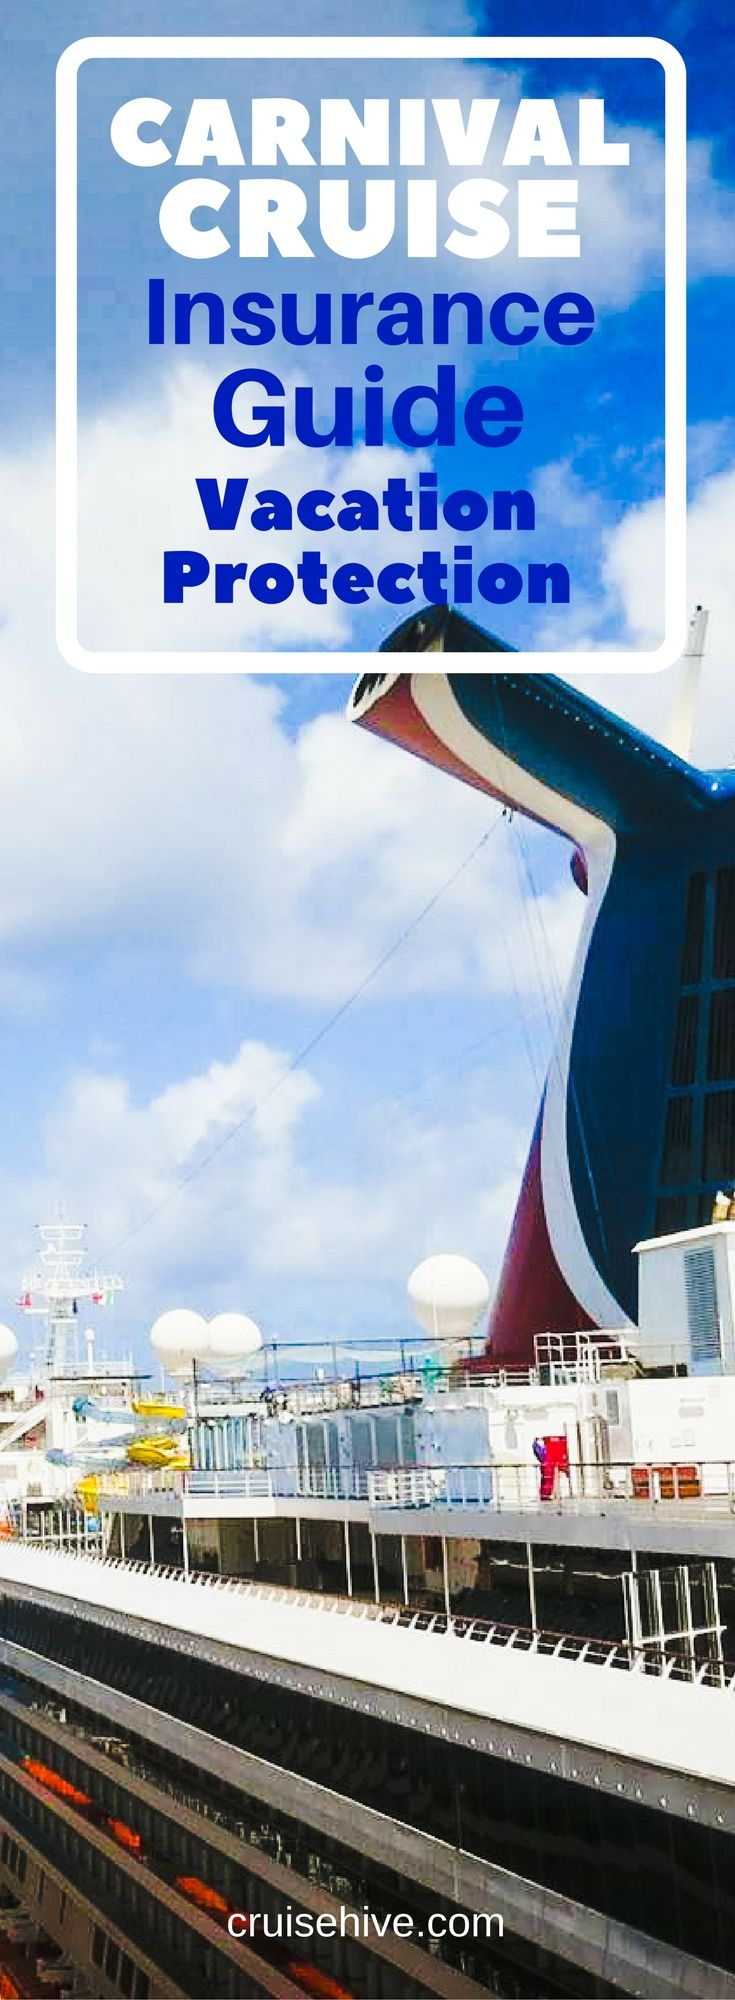 This guide takes a look at the Carnival cruise insurance cover. It aims to provide you with important information about it such as what it covers, benefits offered, and why you may need it. The guide also answers some of the most common questions asked about the cover.